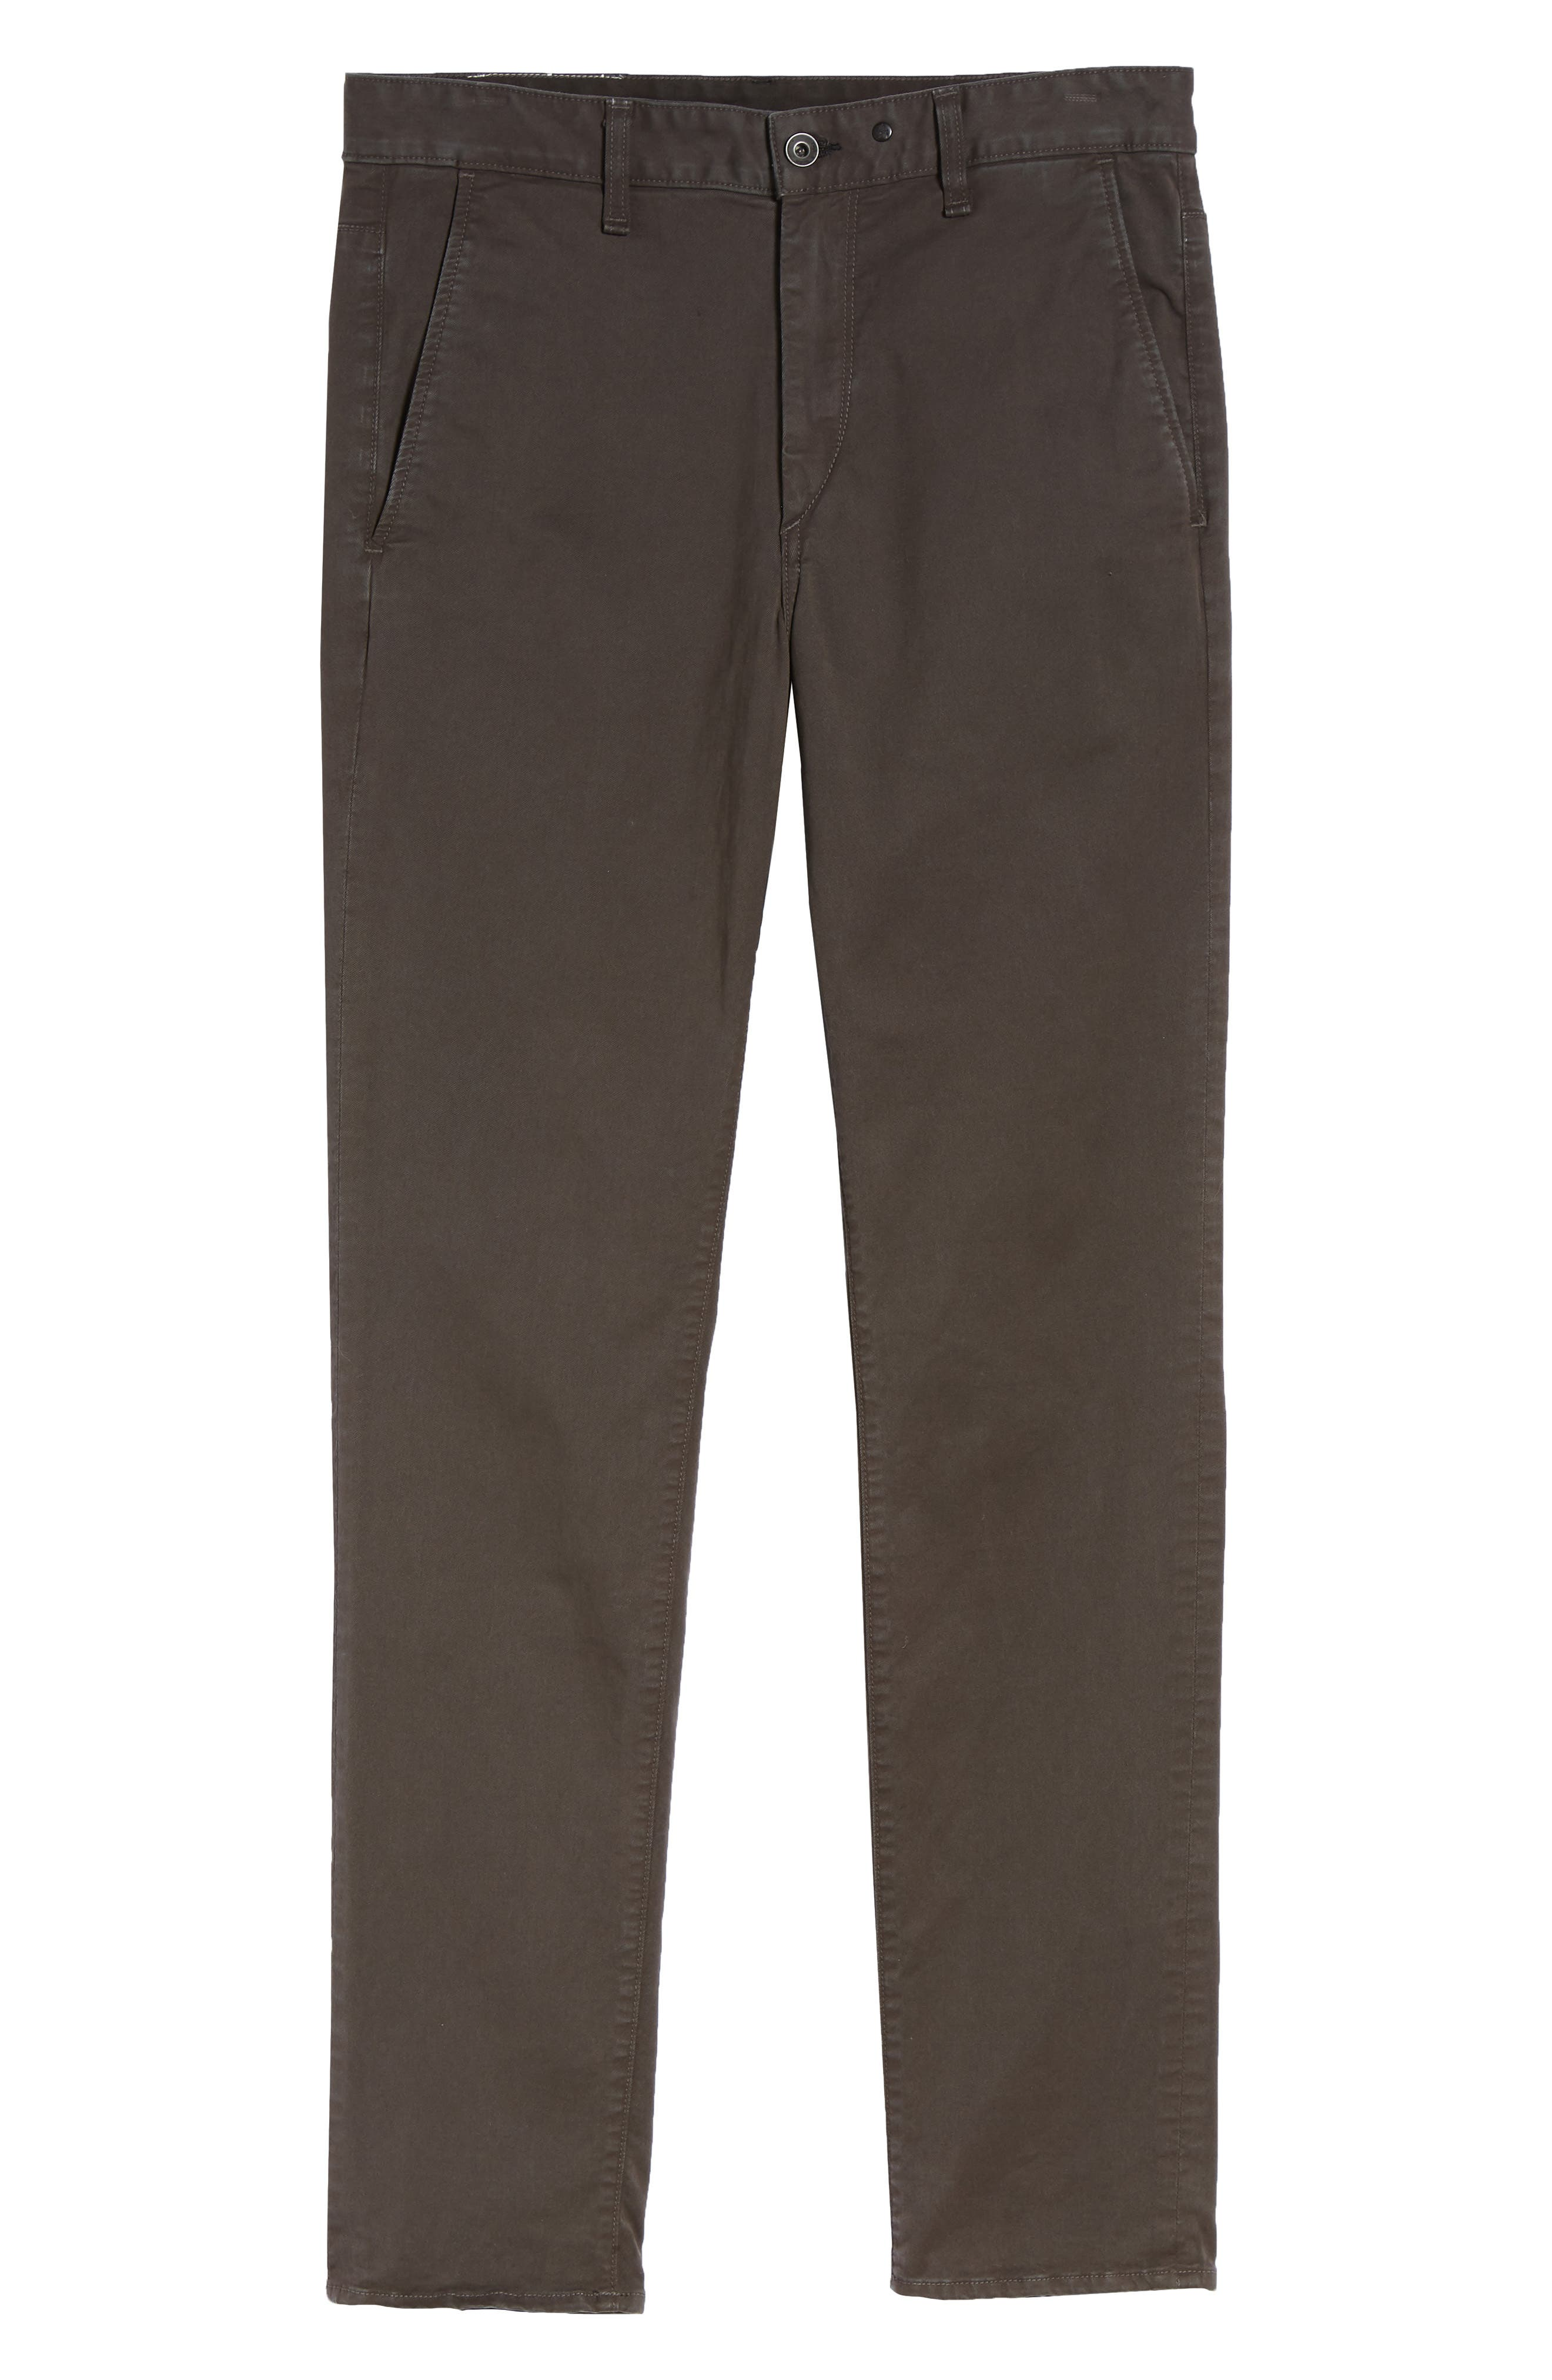 Fit 2 Chinos,                             Alternate thumbnail 6, color,                             GREY